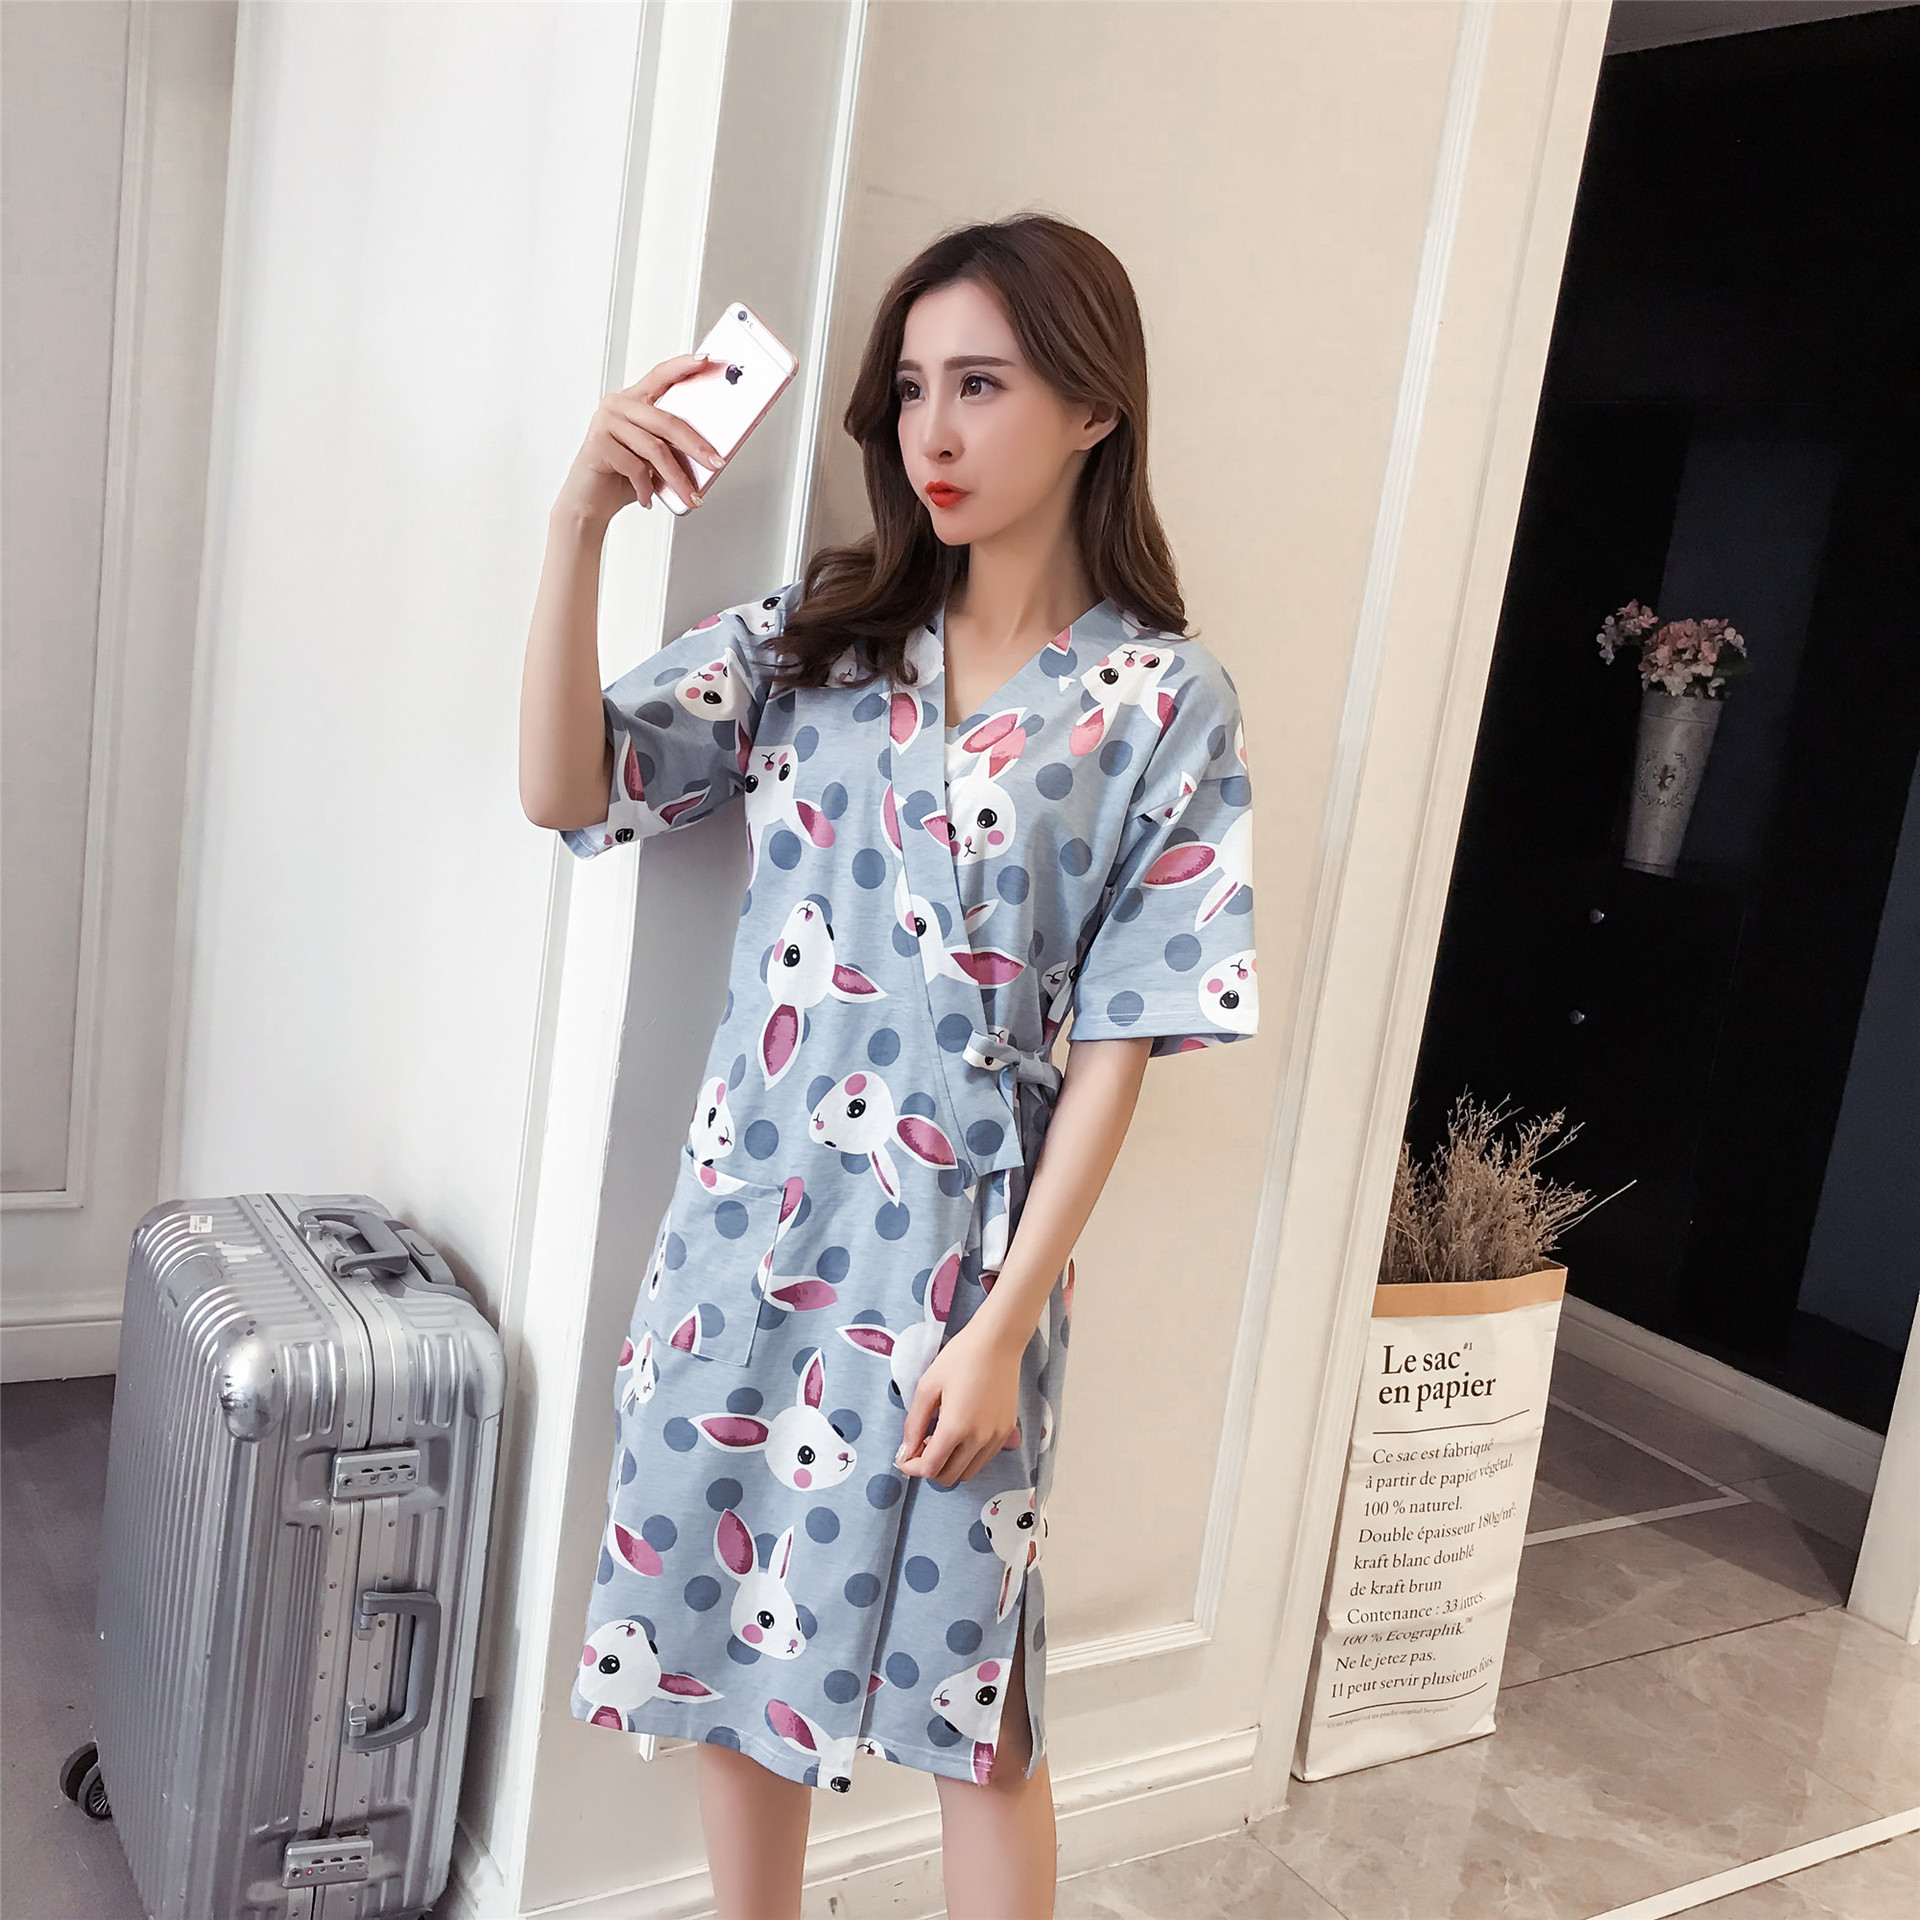 Women's Sleepwear Robes Hot Selling One-piece Thin and light WOMEN'S Summer Short Sleeved Cartoon Rabbit Knit Cotton